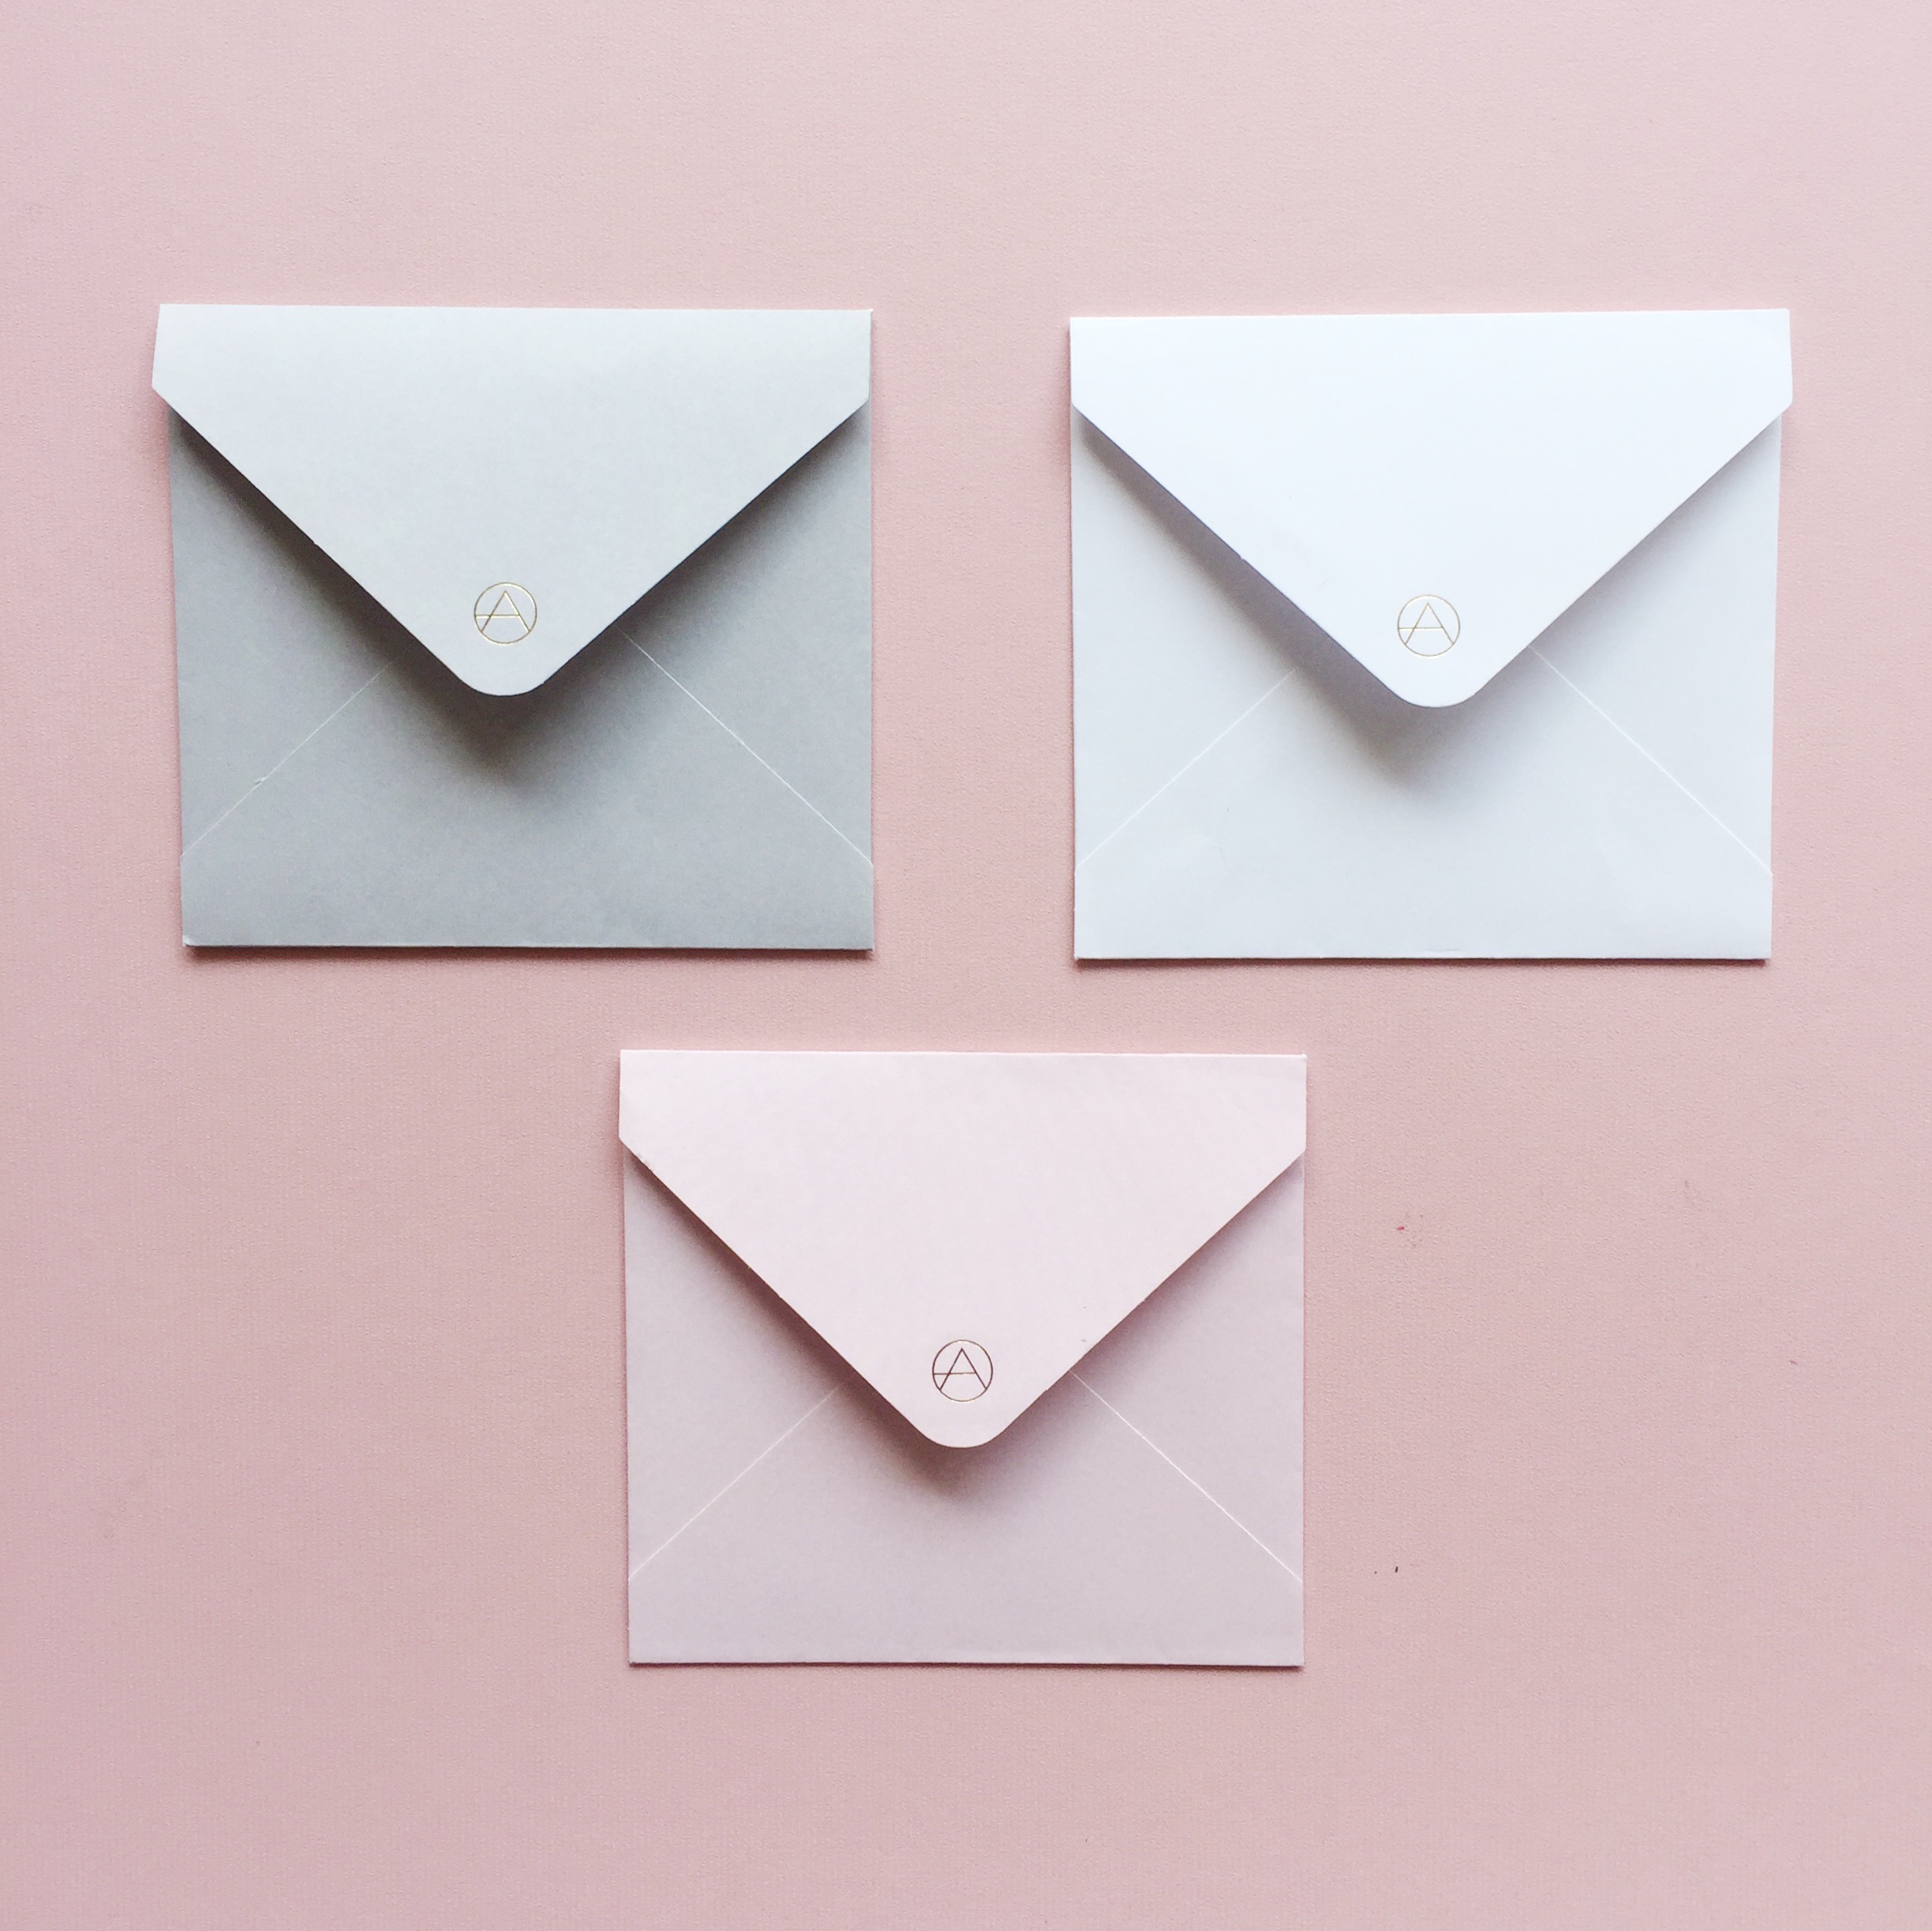 Minimalist Notecards: Variety Pack